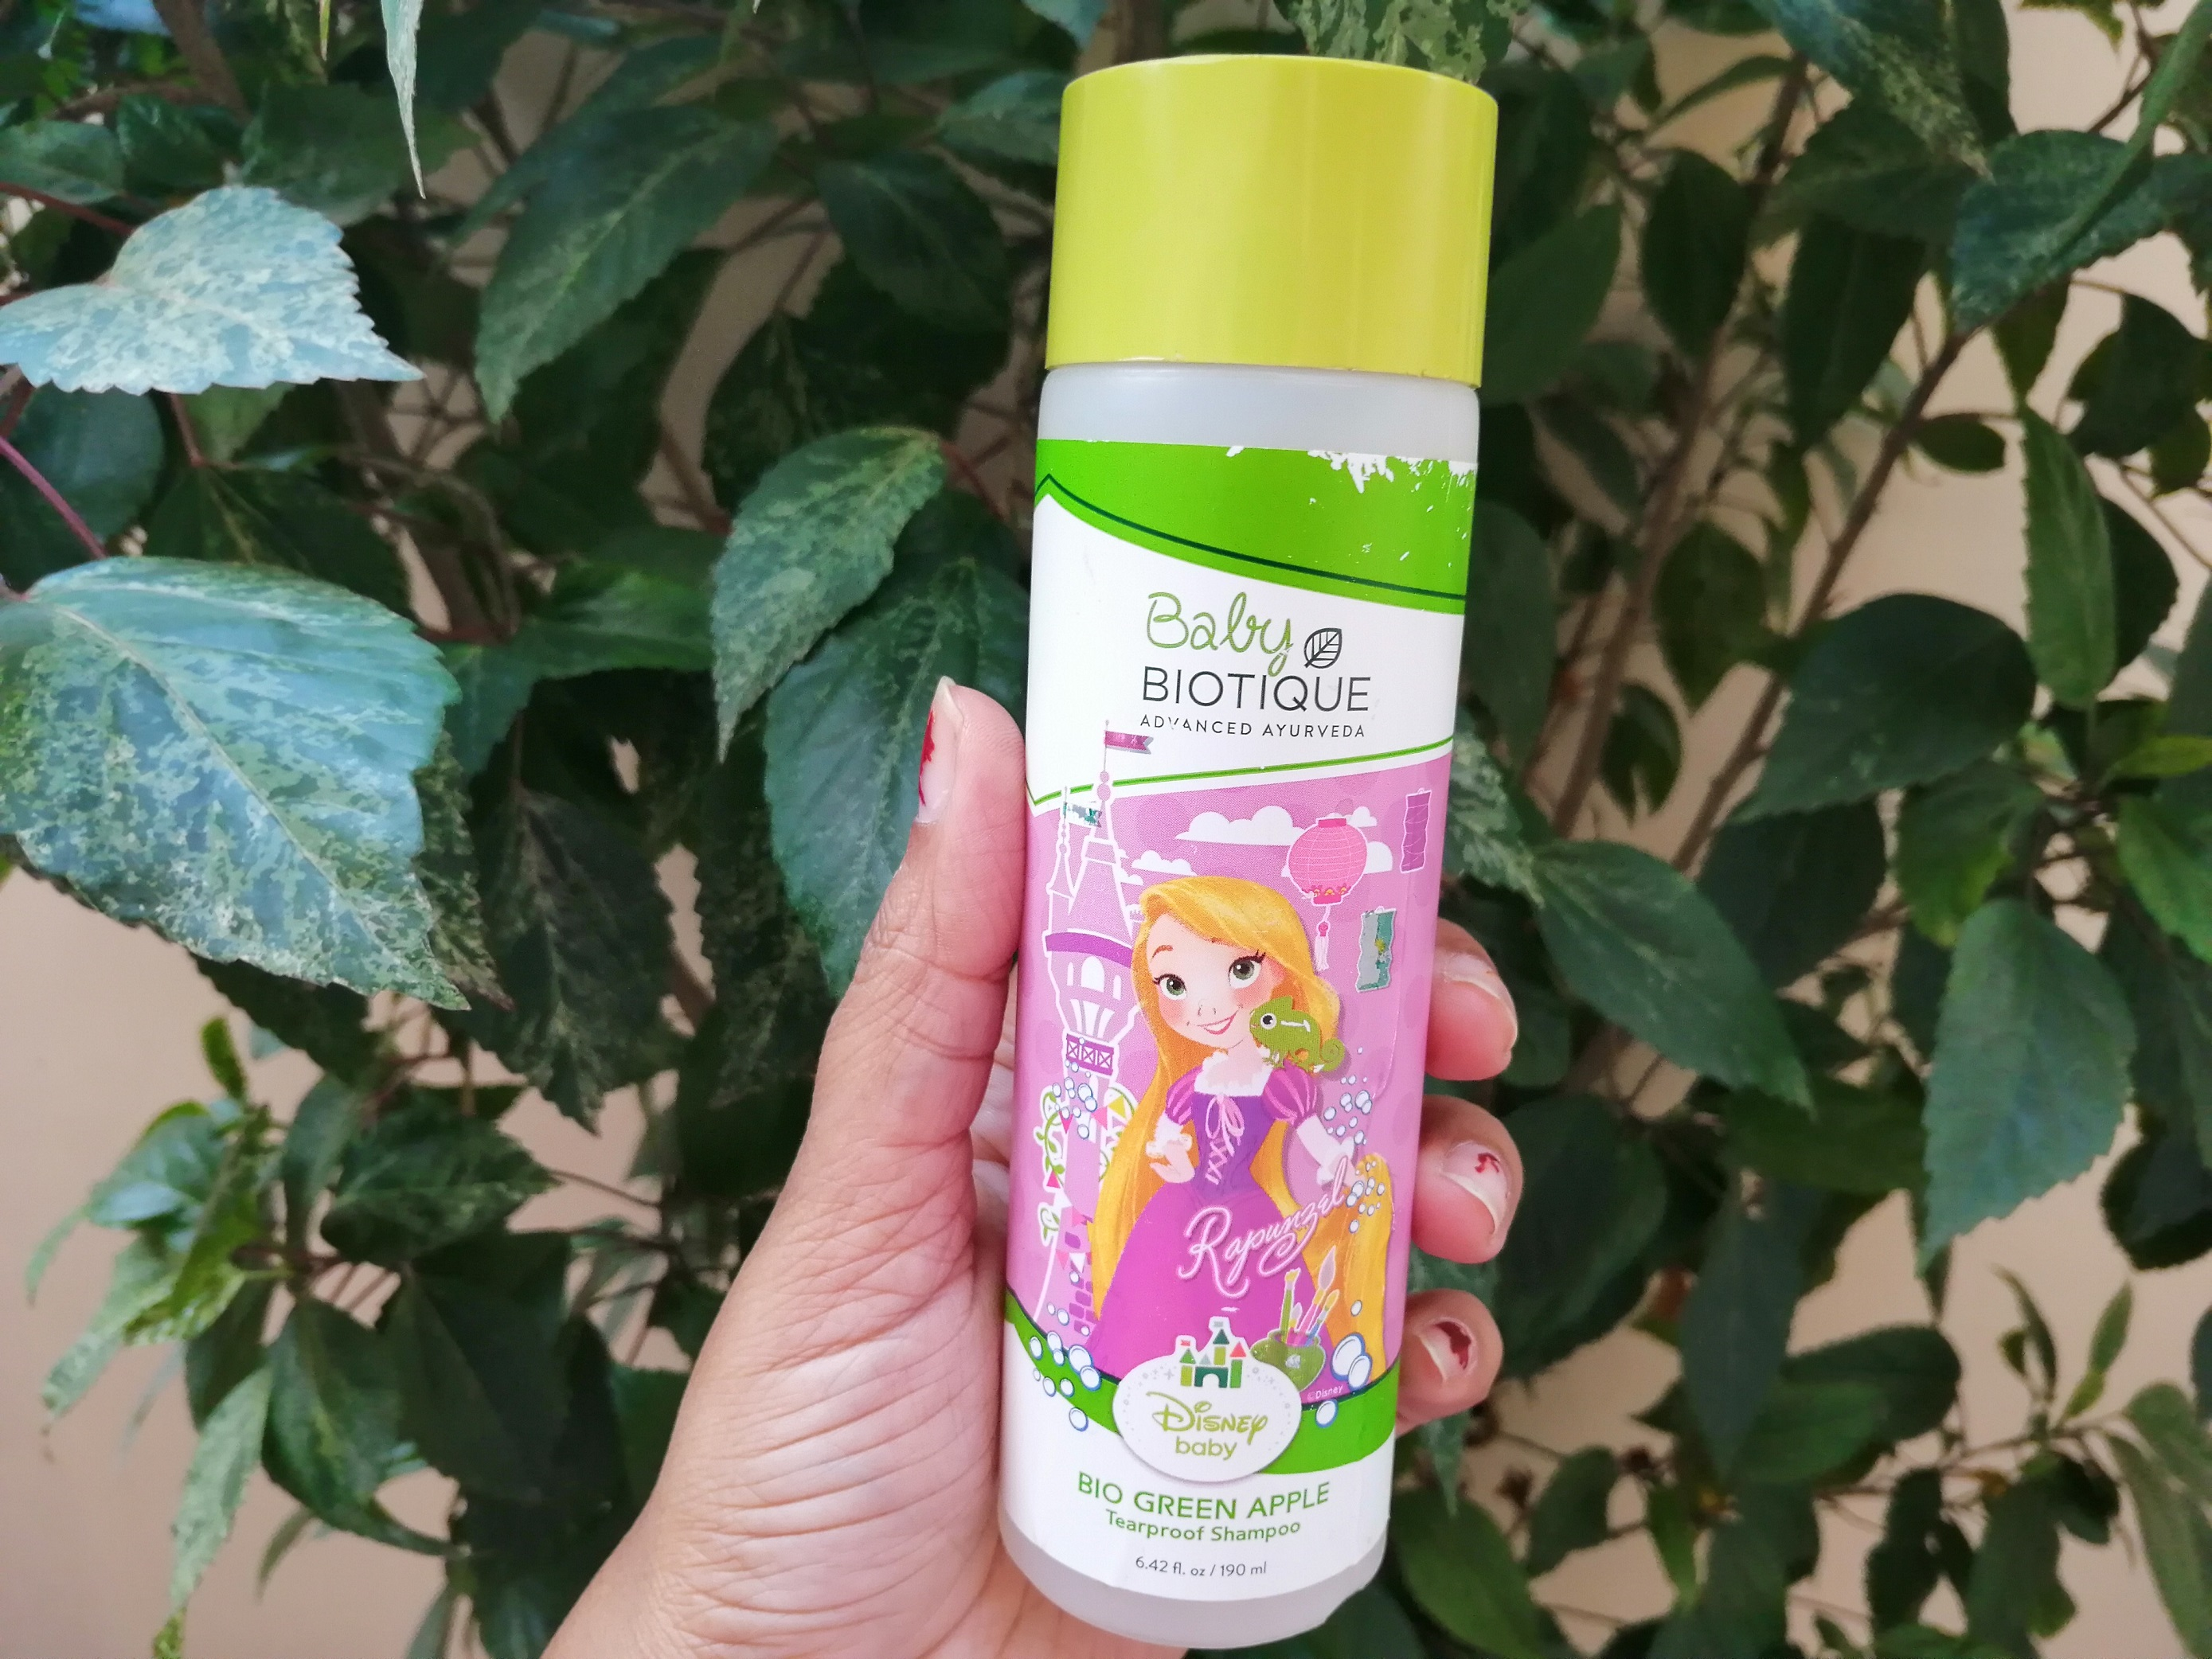 Baby Biotique (Disney Baby) Green Apple Tearproof Shampoo| Review